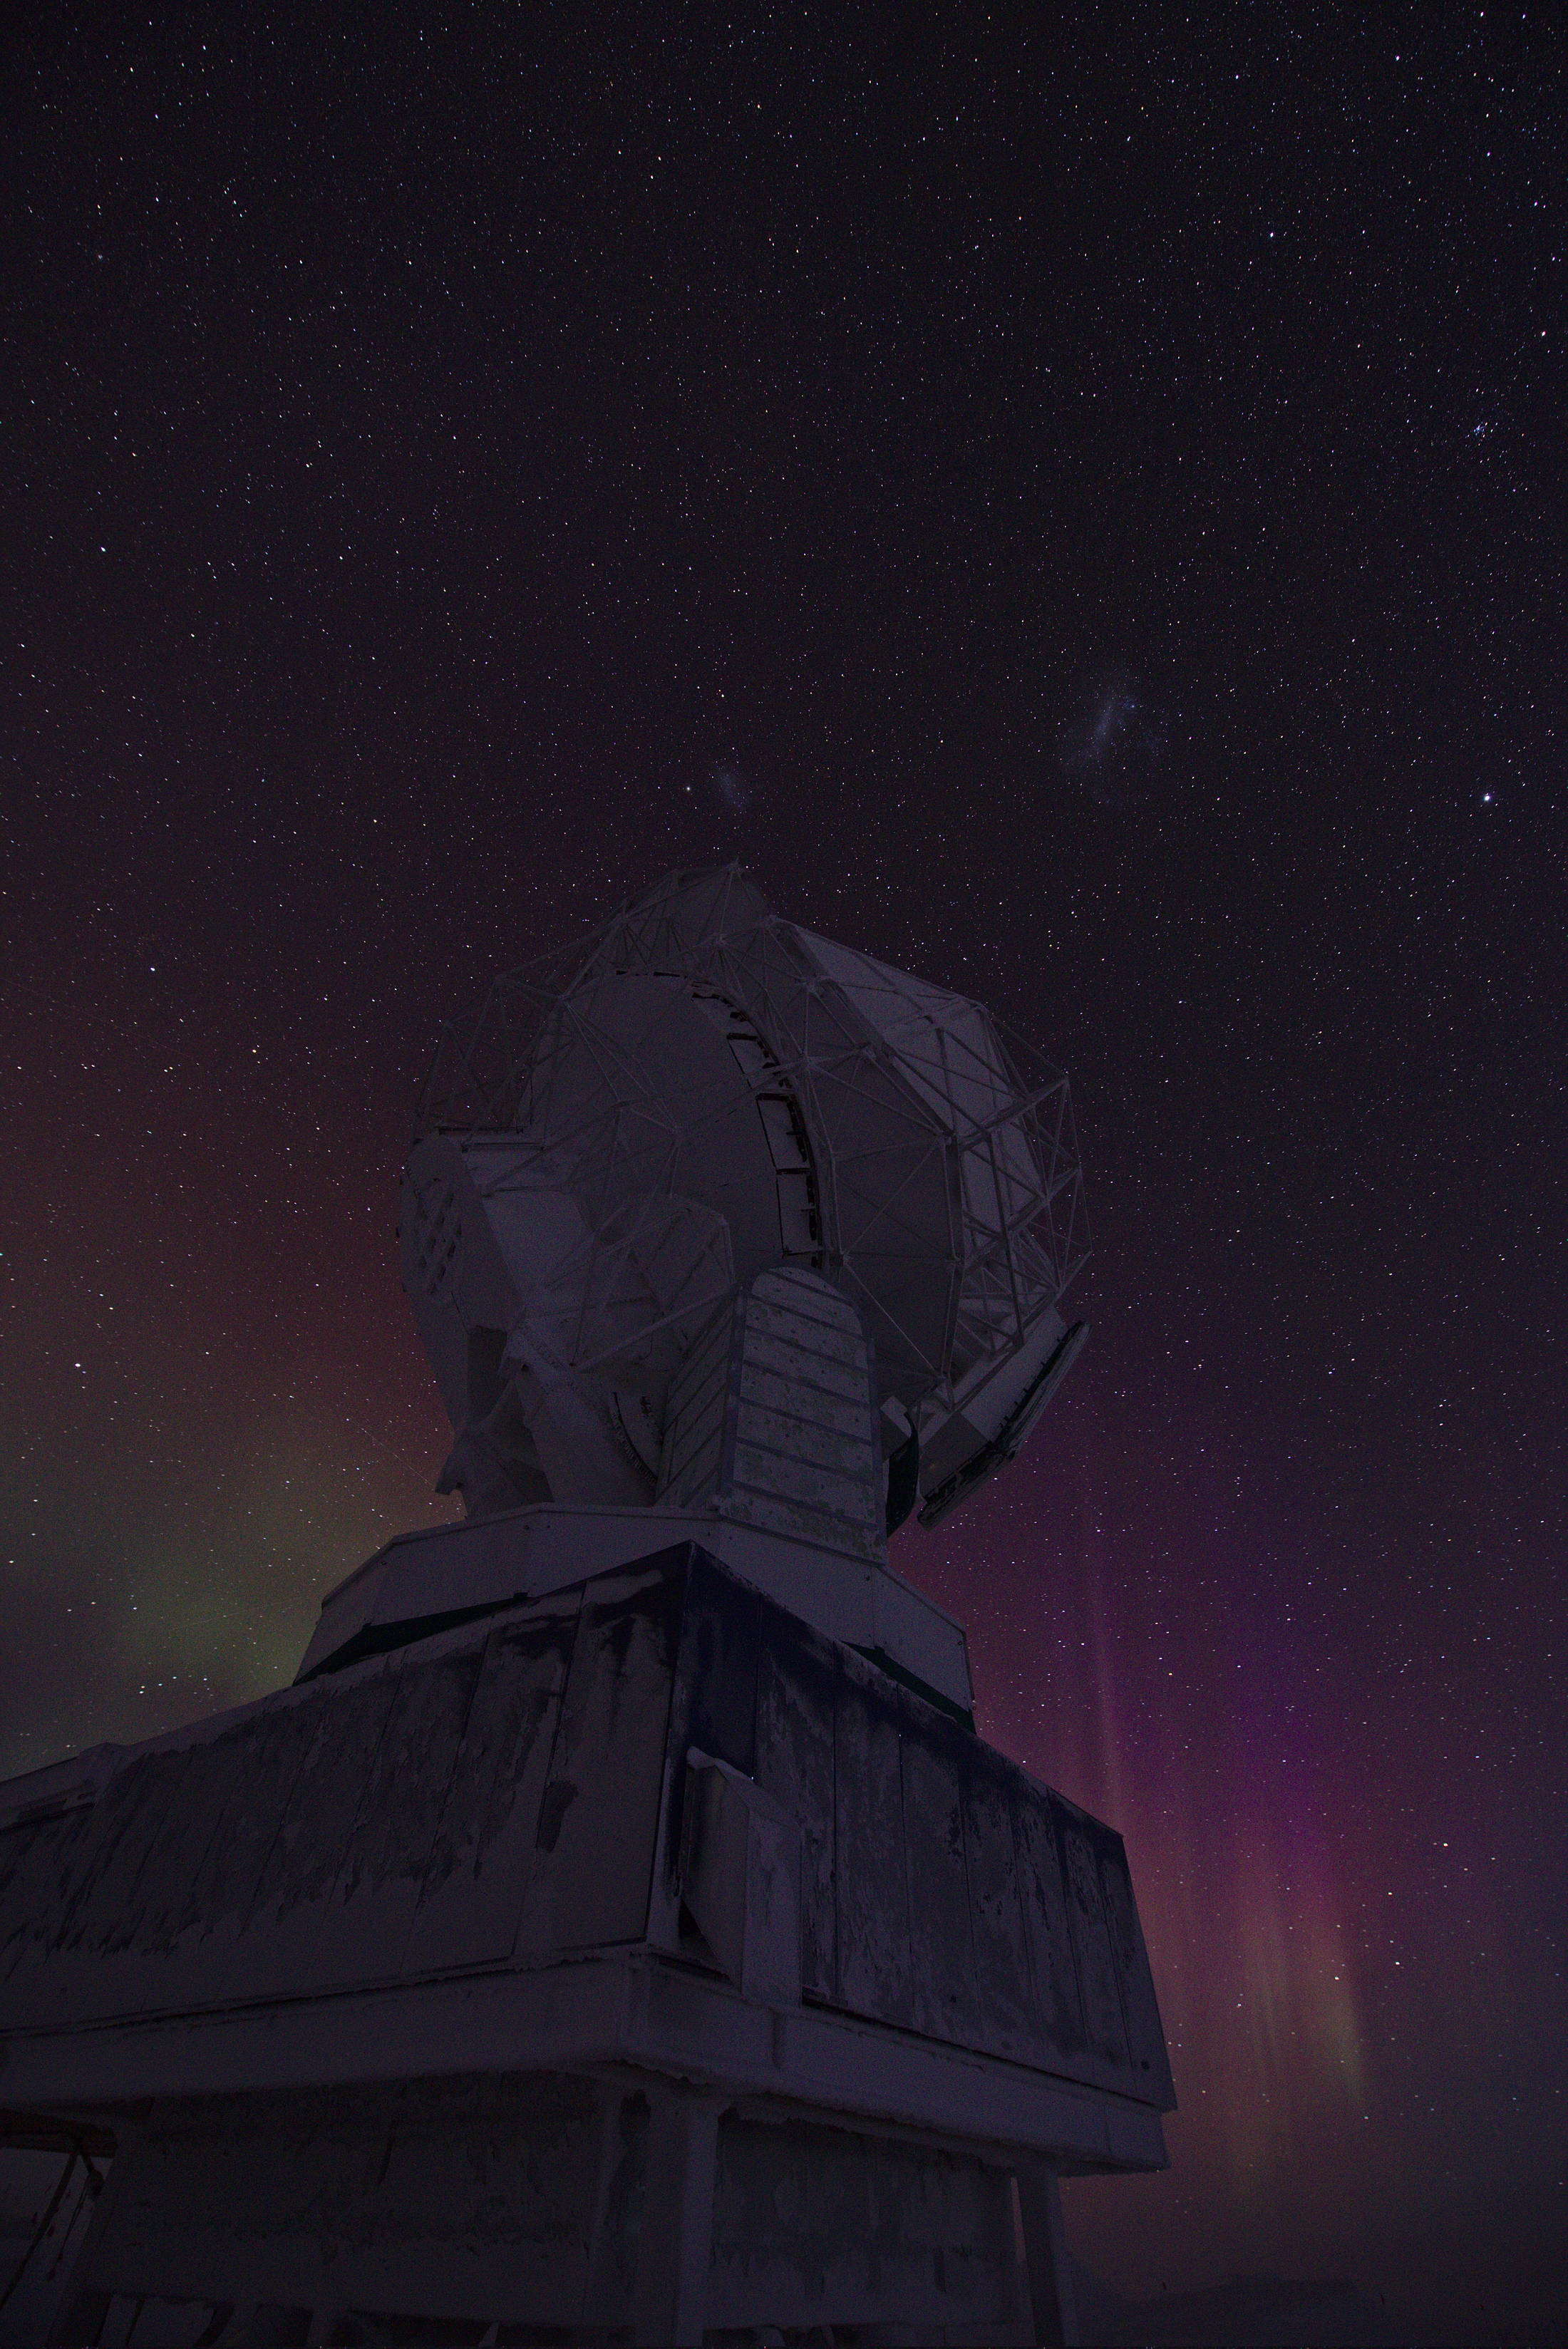 South Pole Telescope from below, with auroras on the horizon and the Magellanic Clouds above the telescope